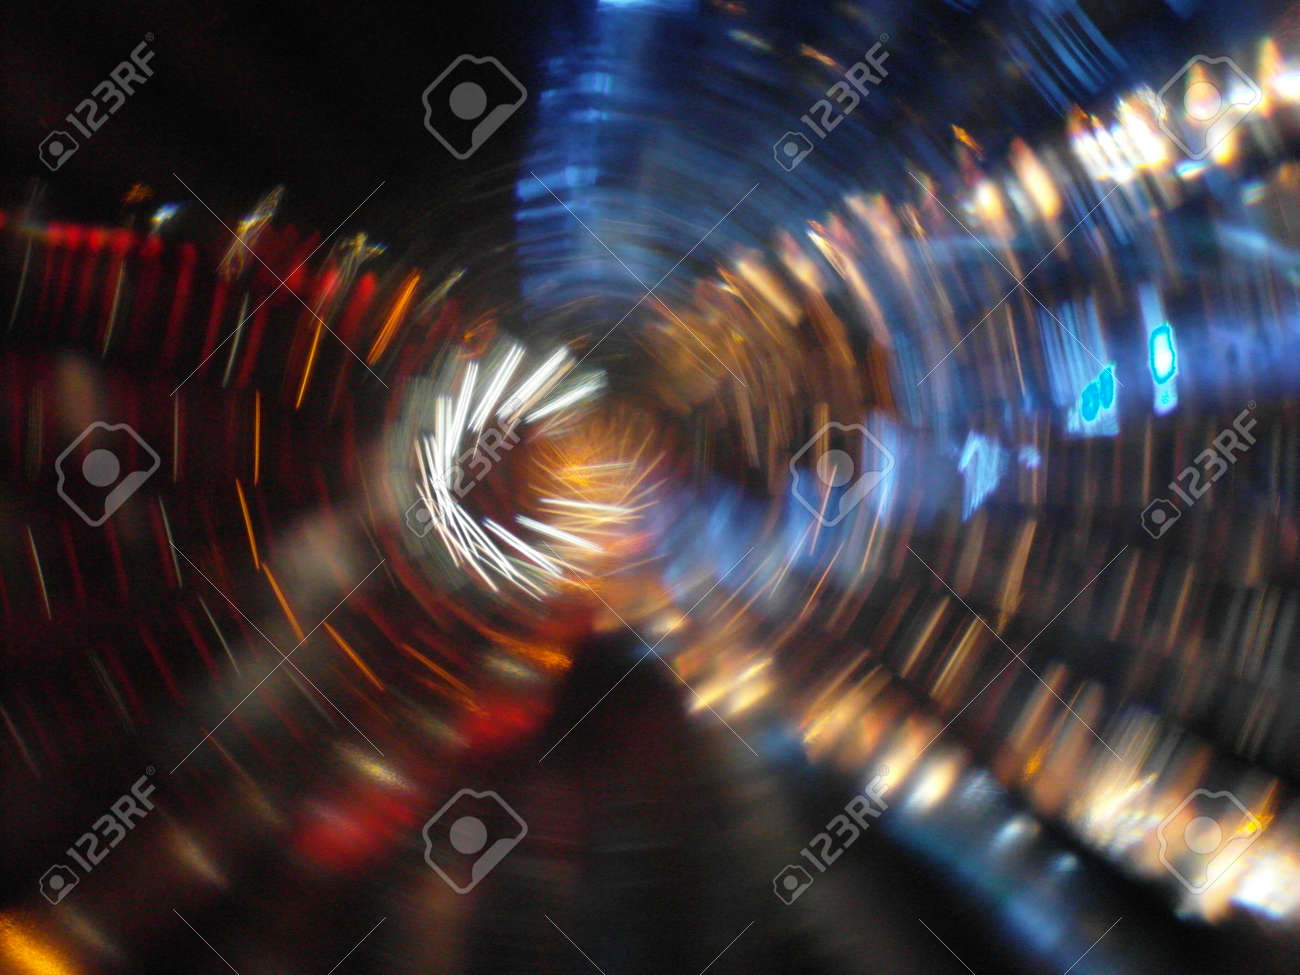 Energetic abstract background